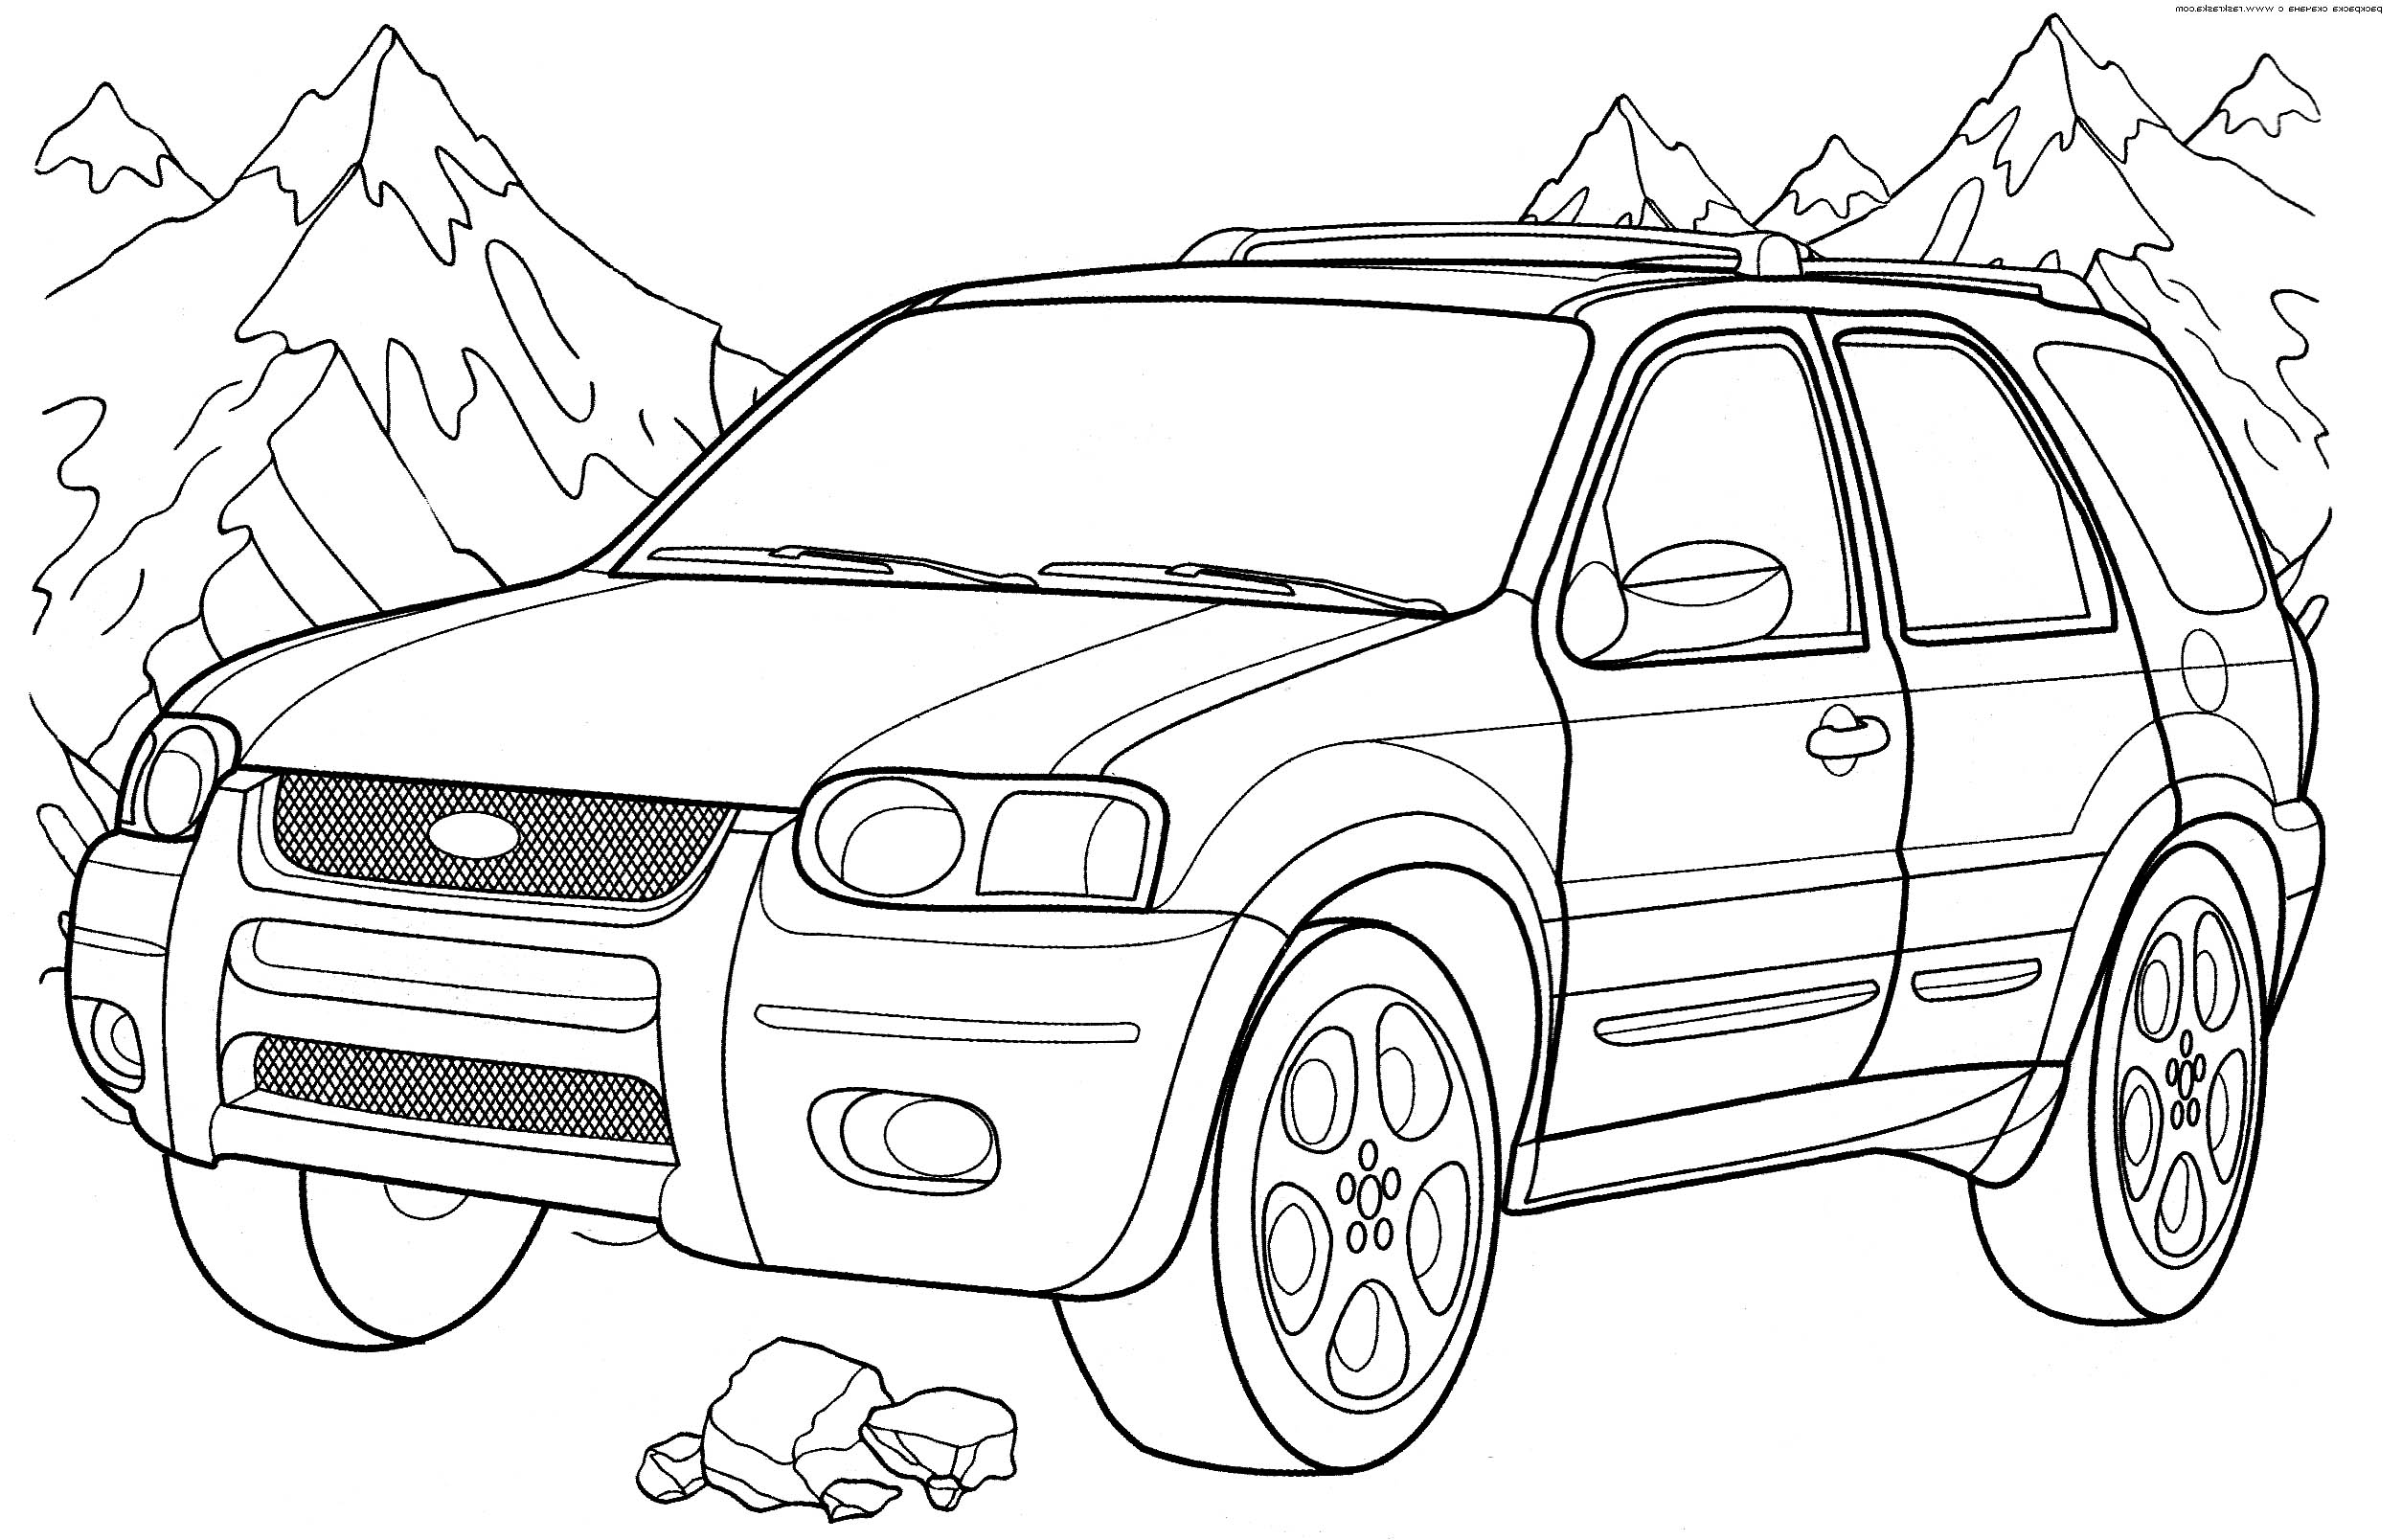 printable pictures of cars to color top car coloring pages free printable online top car of color cars printable to pictures